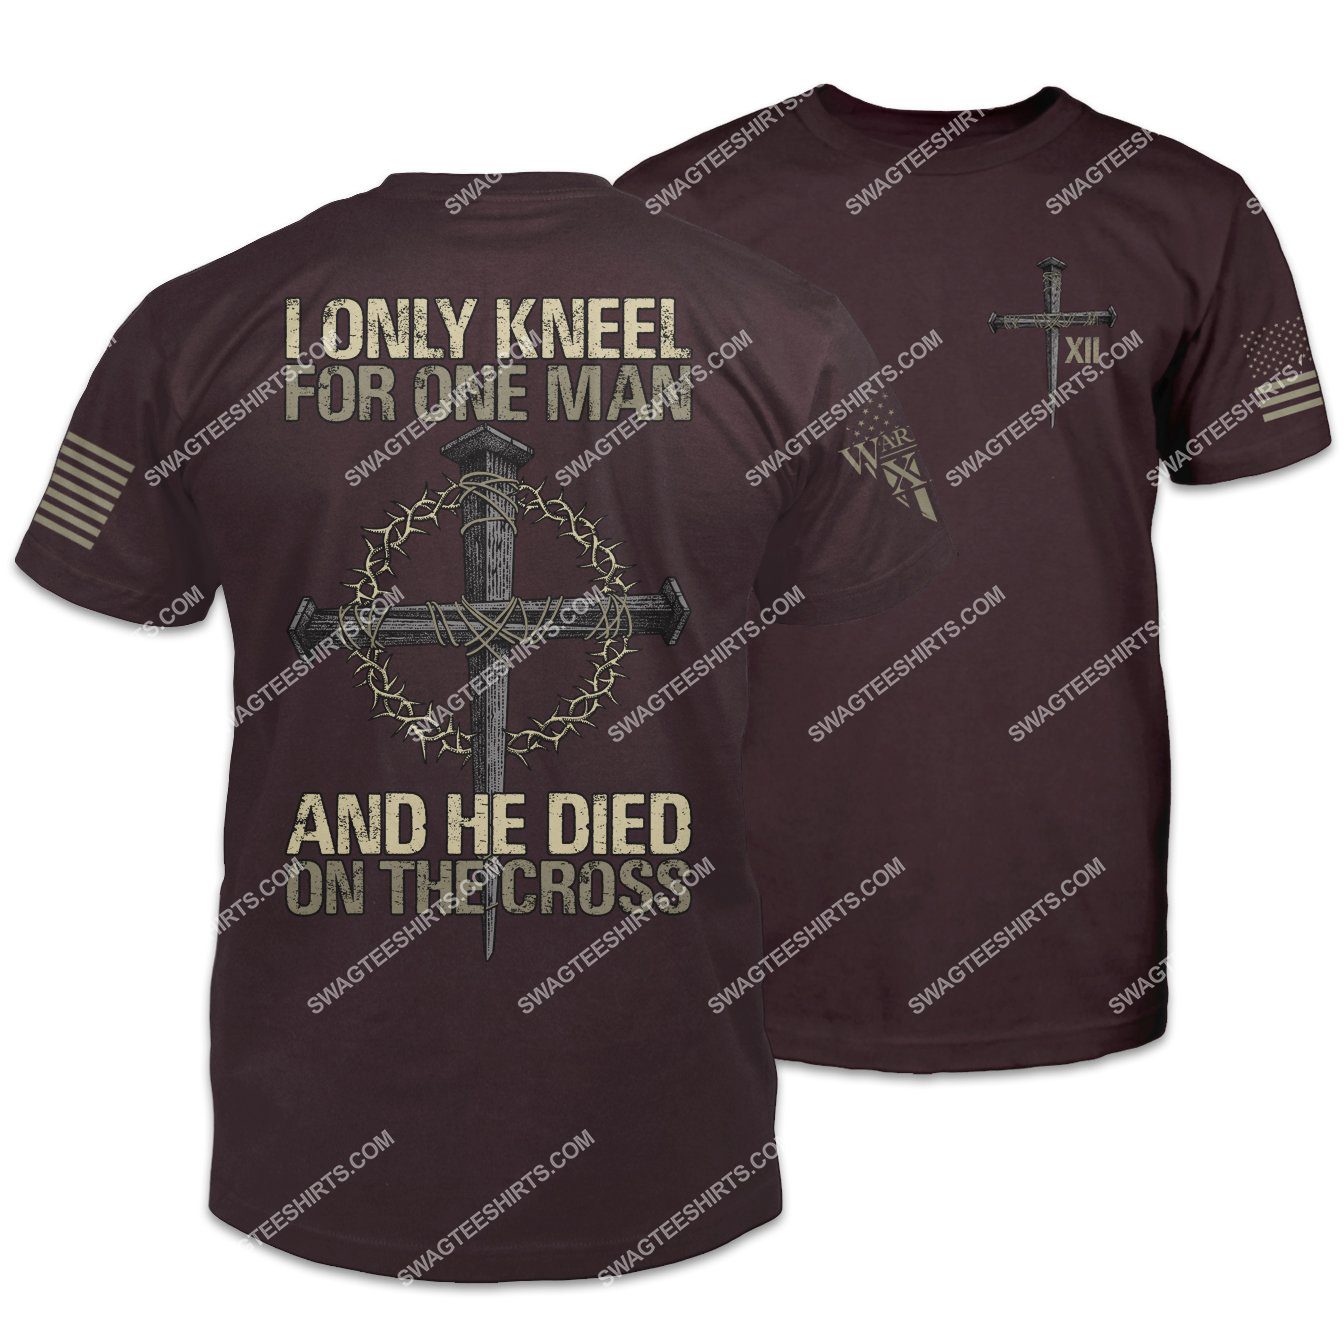 we only kneel for one man and he died on the cross shirt 1 - Copy (3)